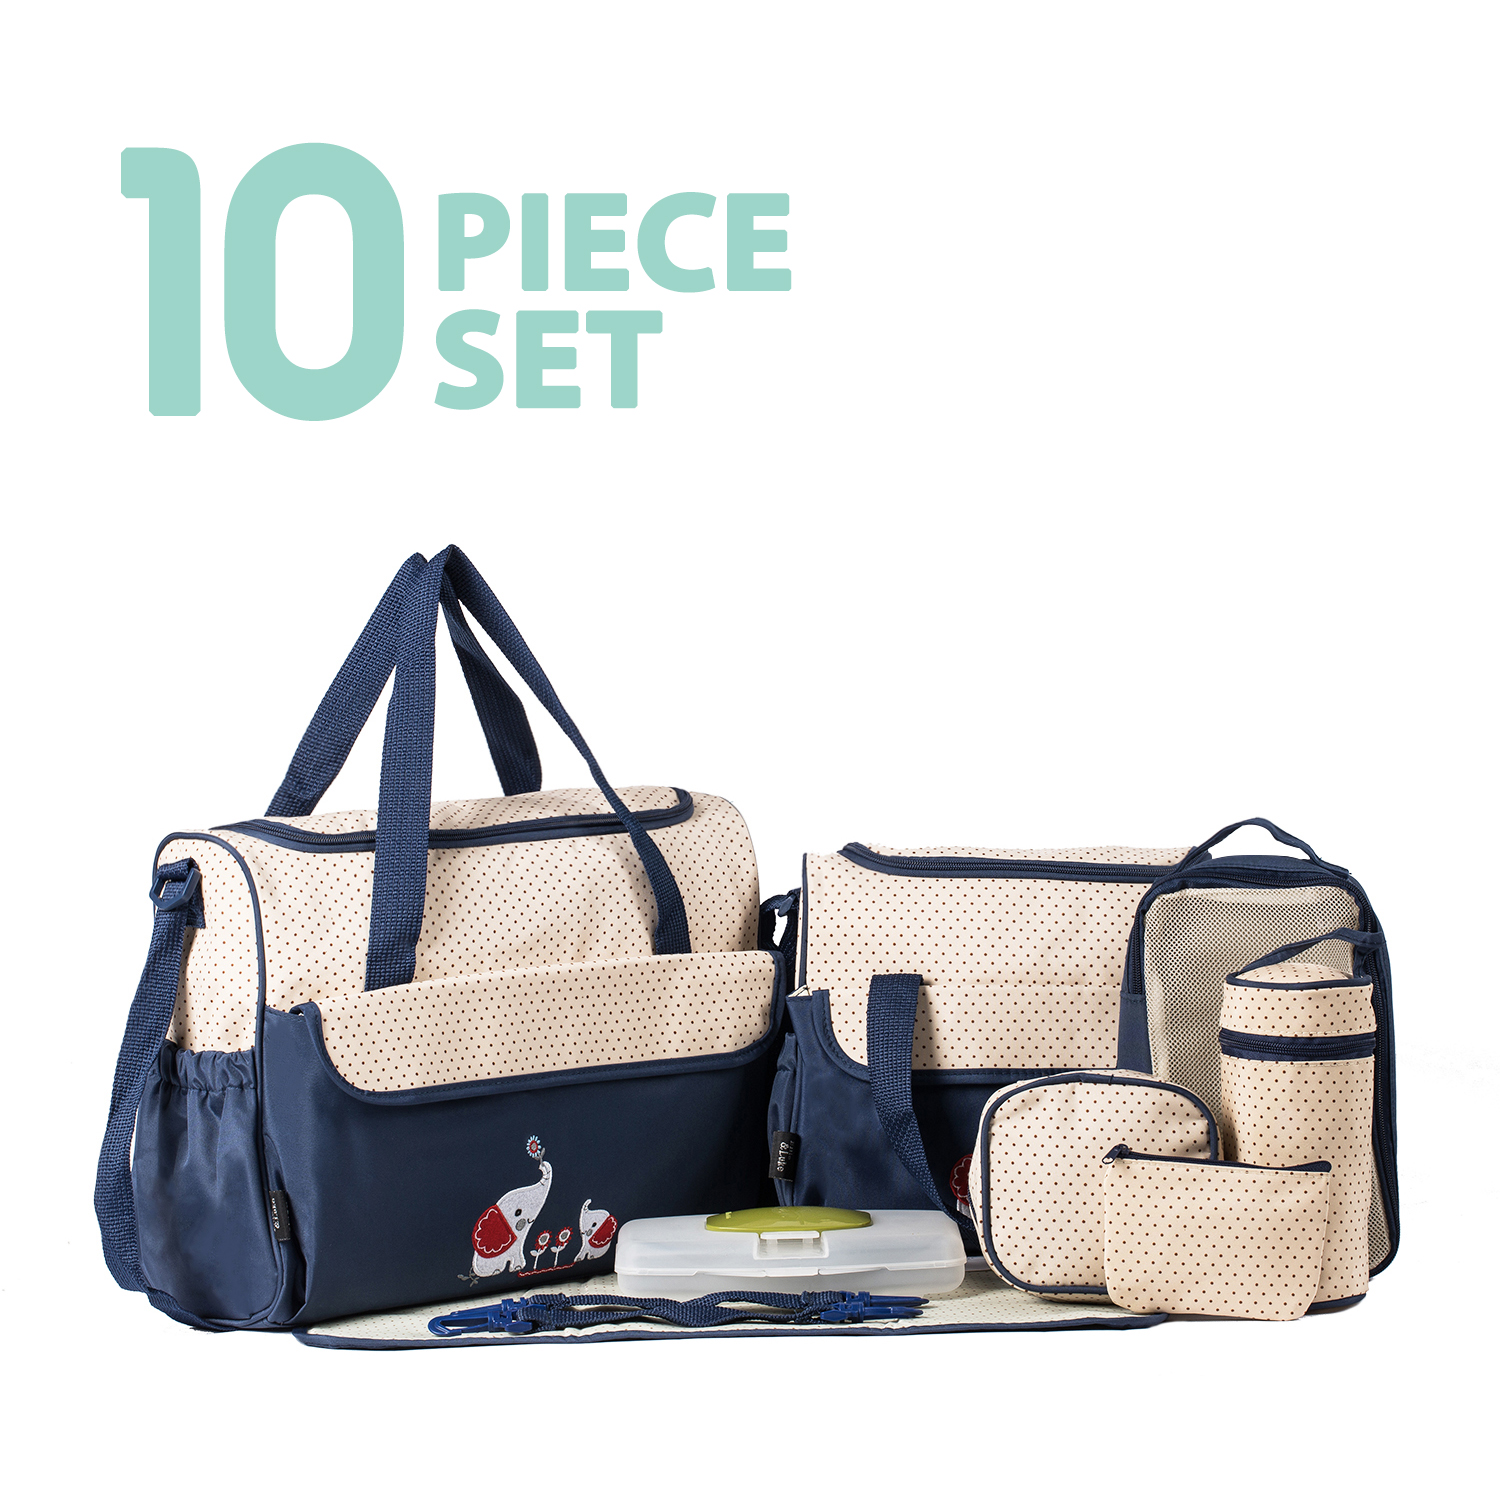 SoHo Collections, Large Capacity Tote Diaper Bag, 10 Piece Complete Set with Stroller Straps (Royal Navy)